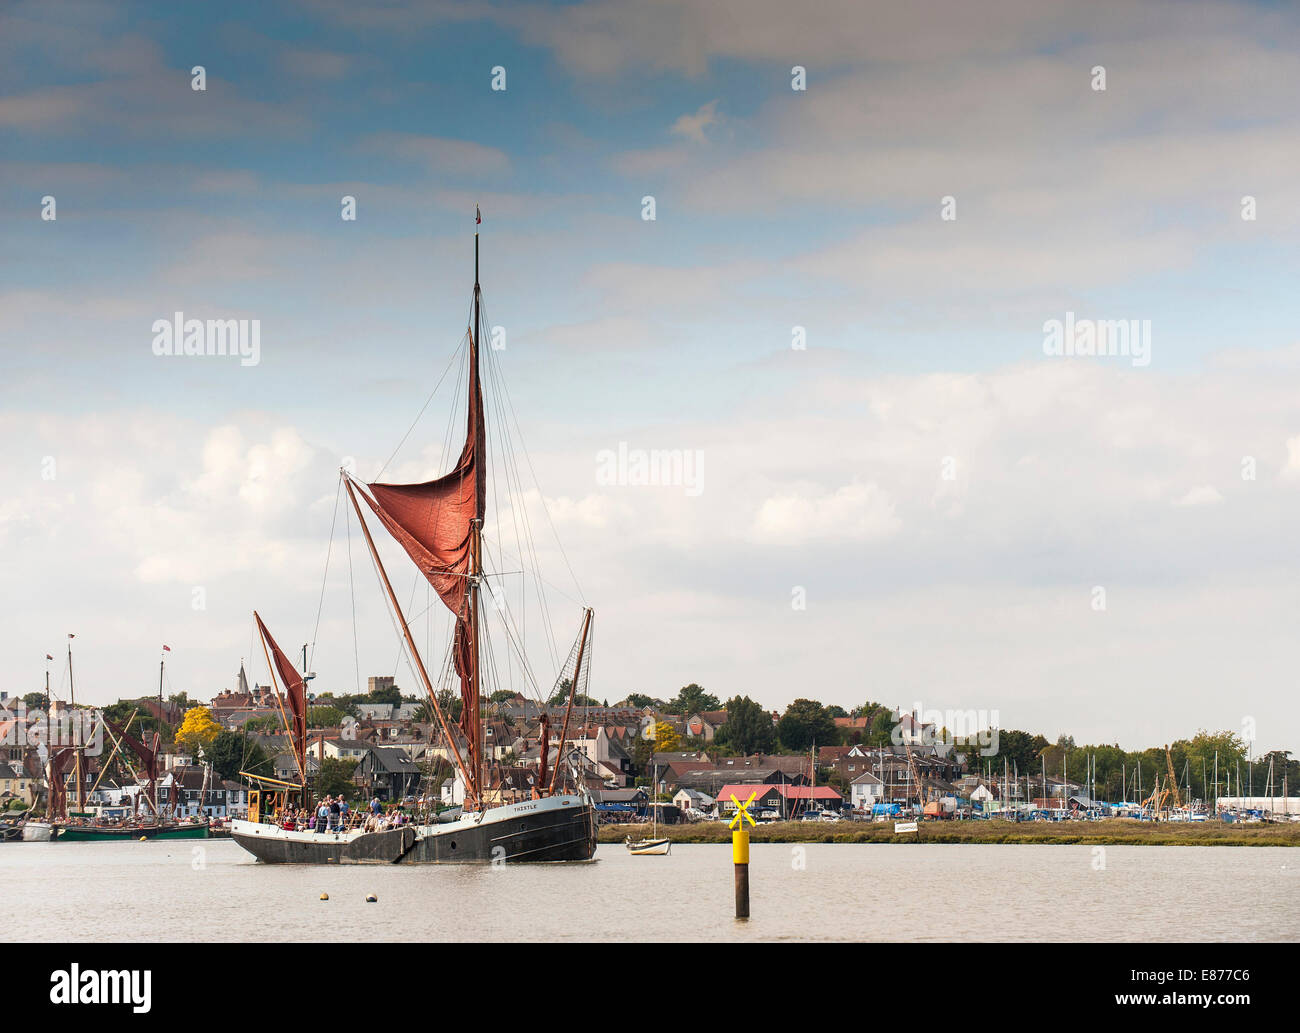 The Sailing Barge 'Thistle' leaving Maldon and sailing downriver on the Blackwater River in Essex. - Stock Image